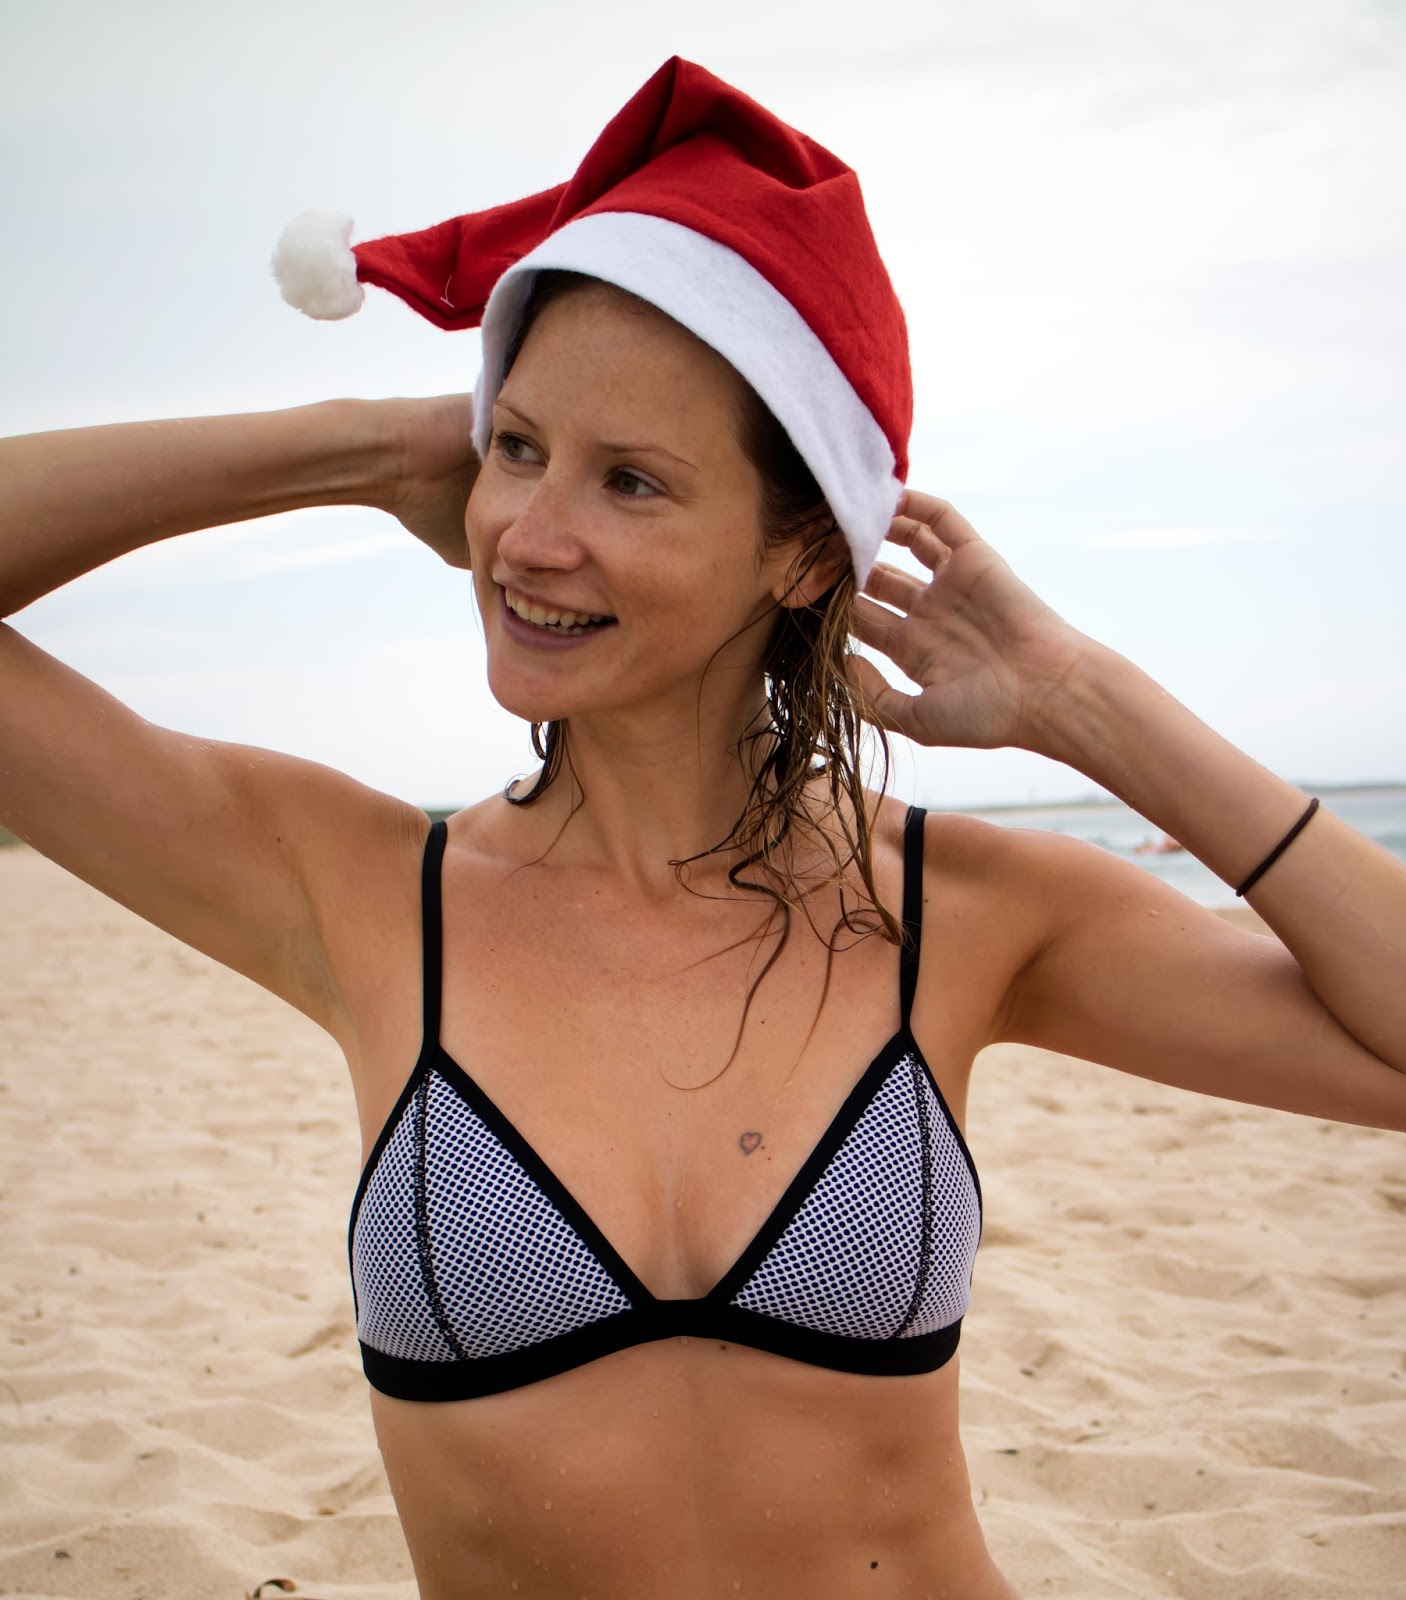 fashion and travel blogger, Alison Hutchinson, celebrating Christmas at the beach in Sydney, Australia